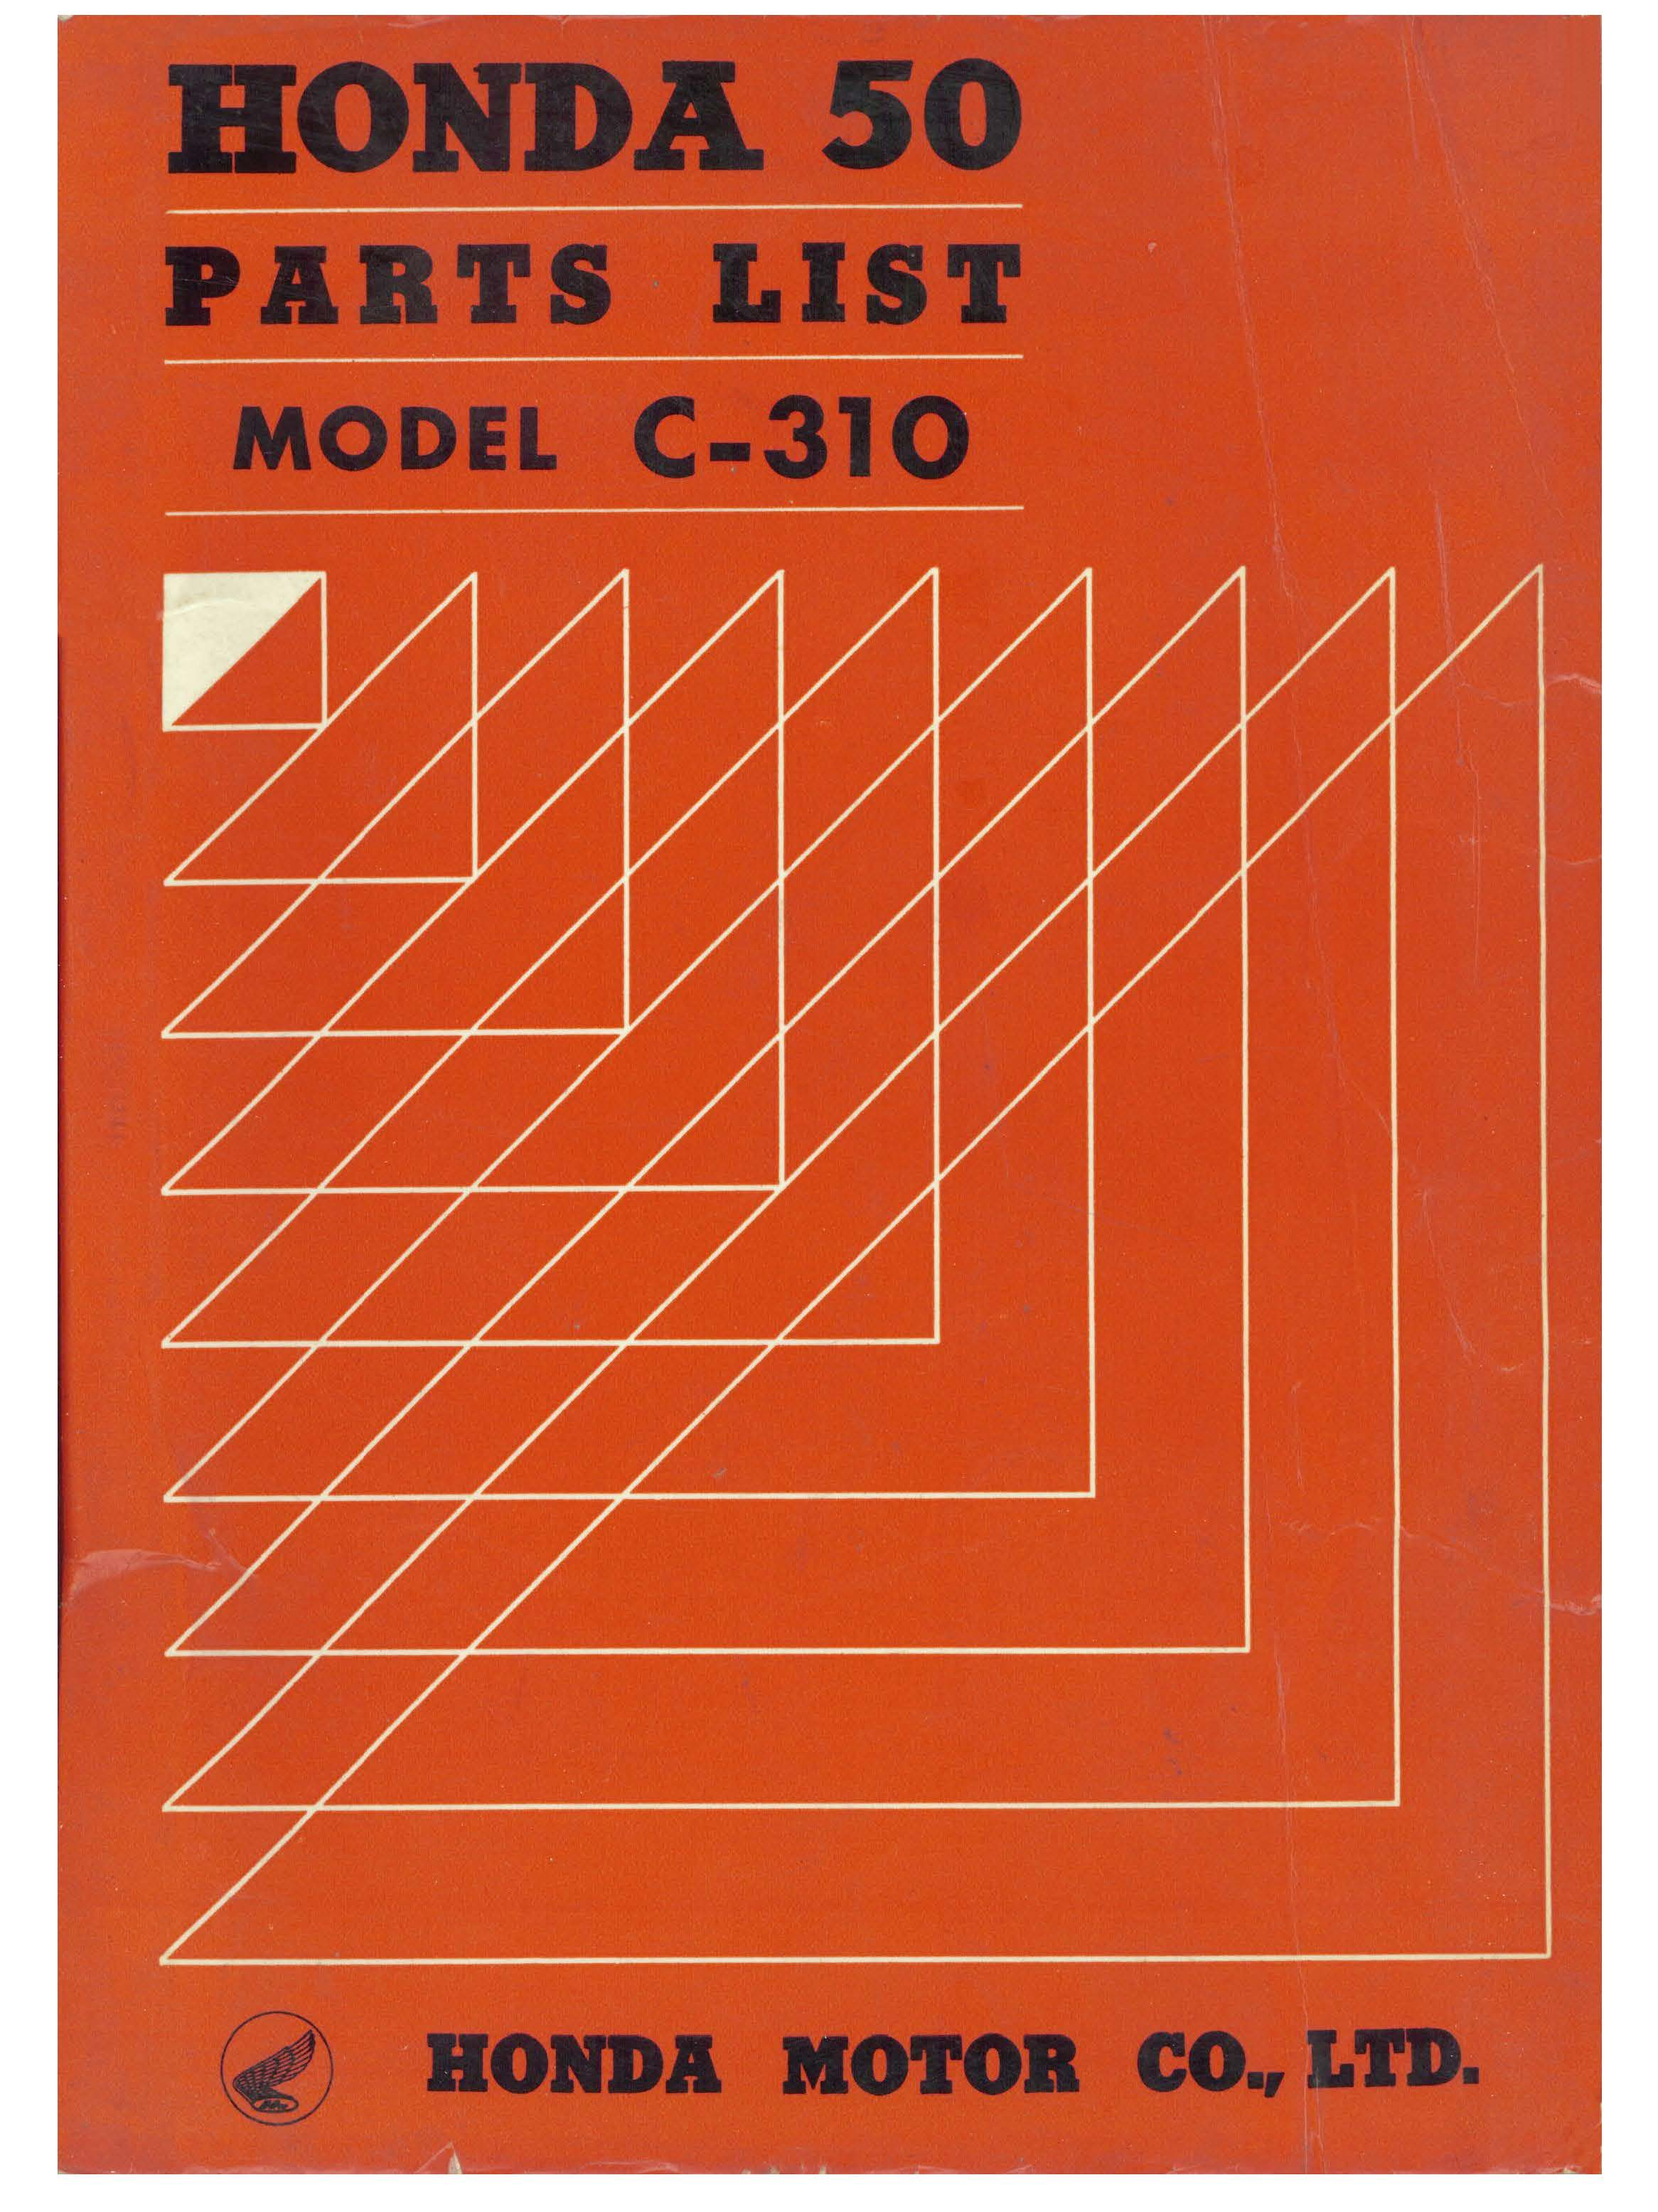 Parts List for Honda C310 (1963)